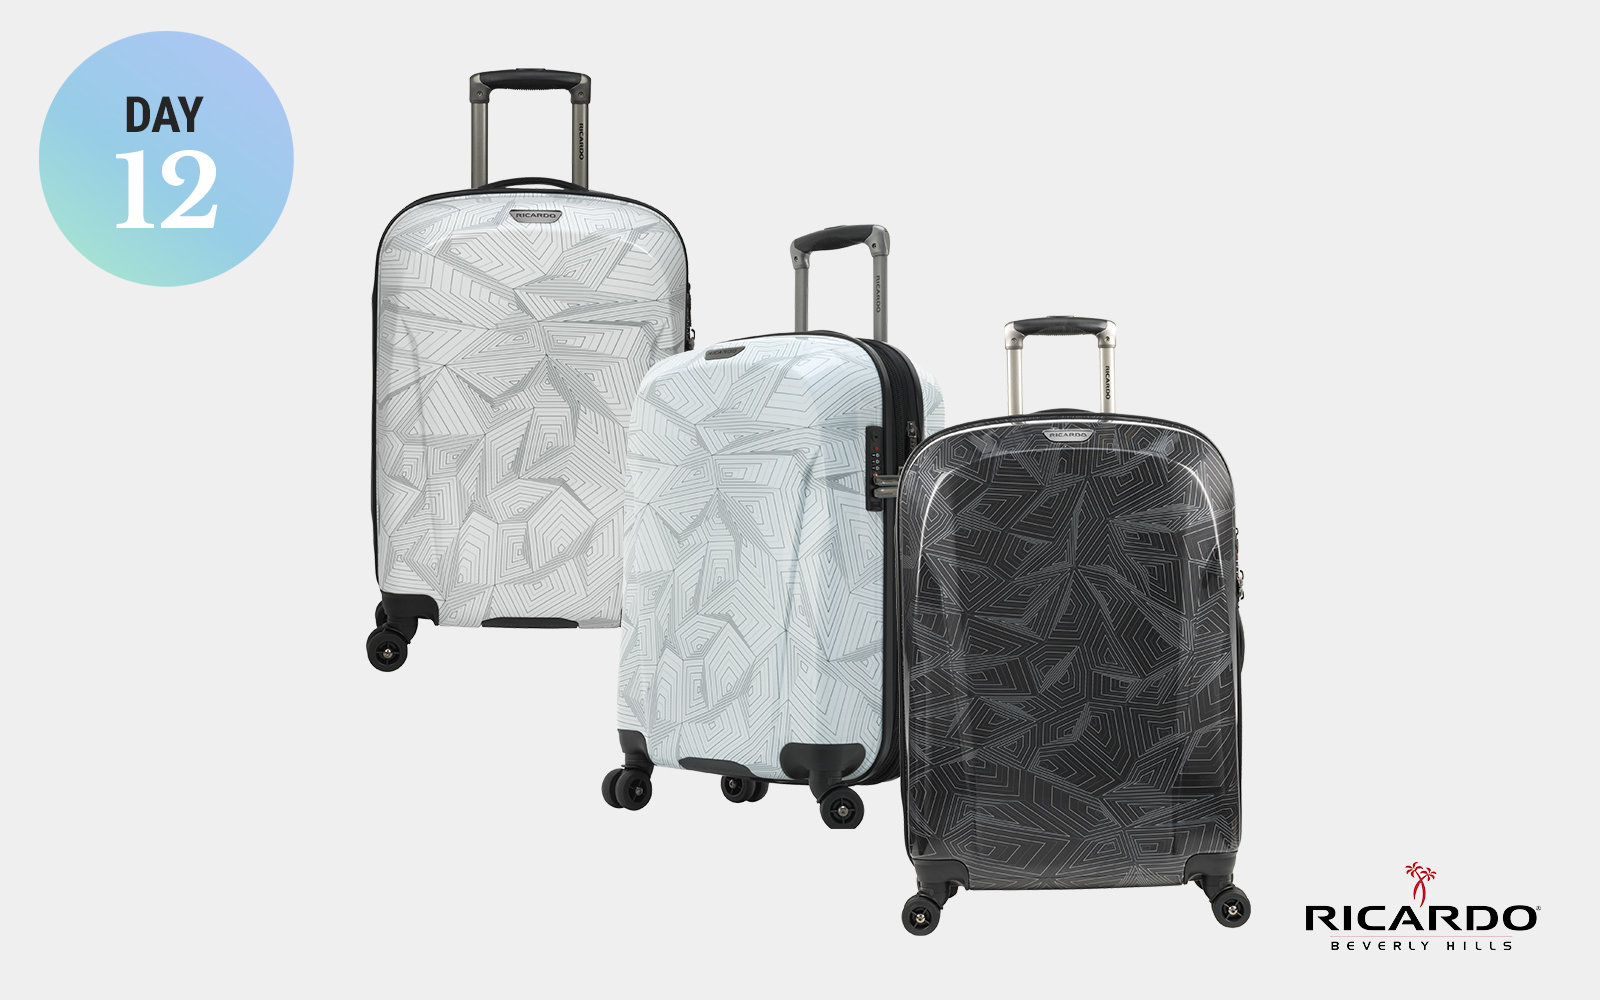 Ricardo Beverly Hills Spectrum 21-Inch Carry-On & Spectrum 24-Inch Spinner